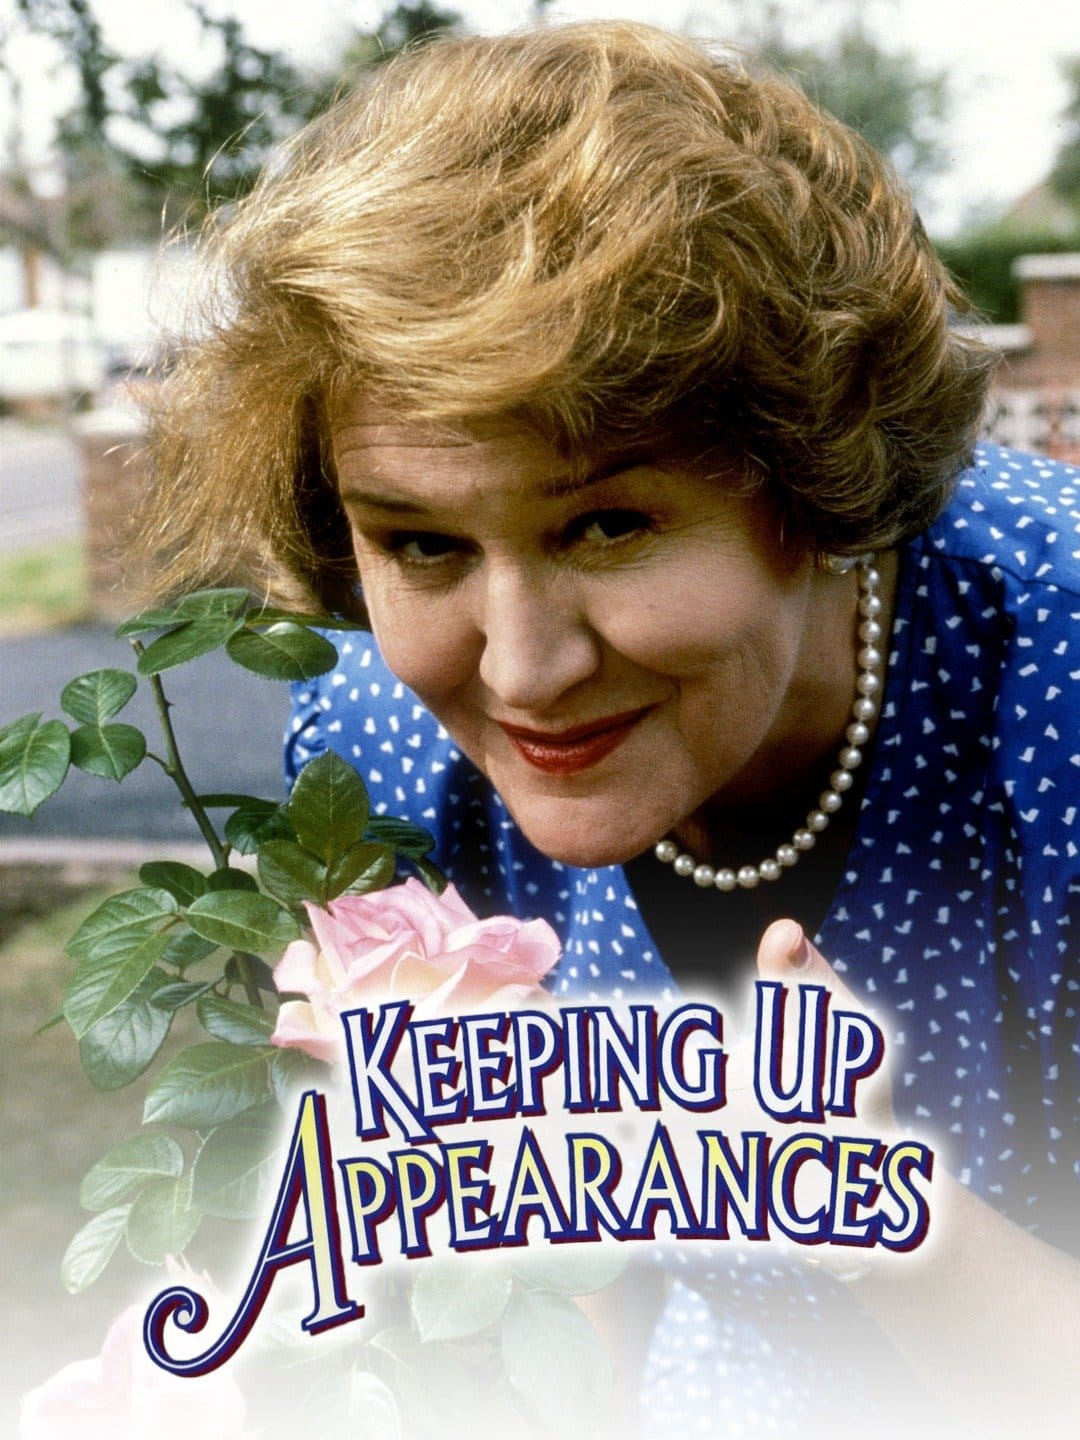 Keeping Up Appearances - Digital SD - Seasons 1-5 at $4.99 Each on Google Play